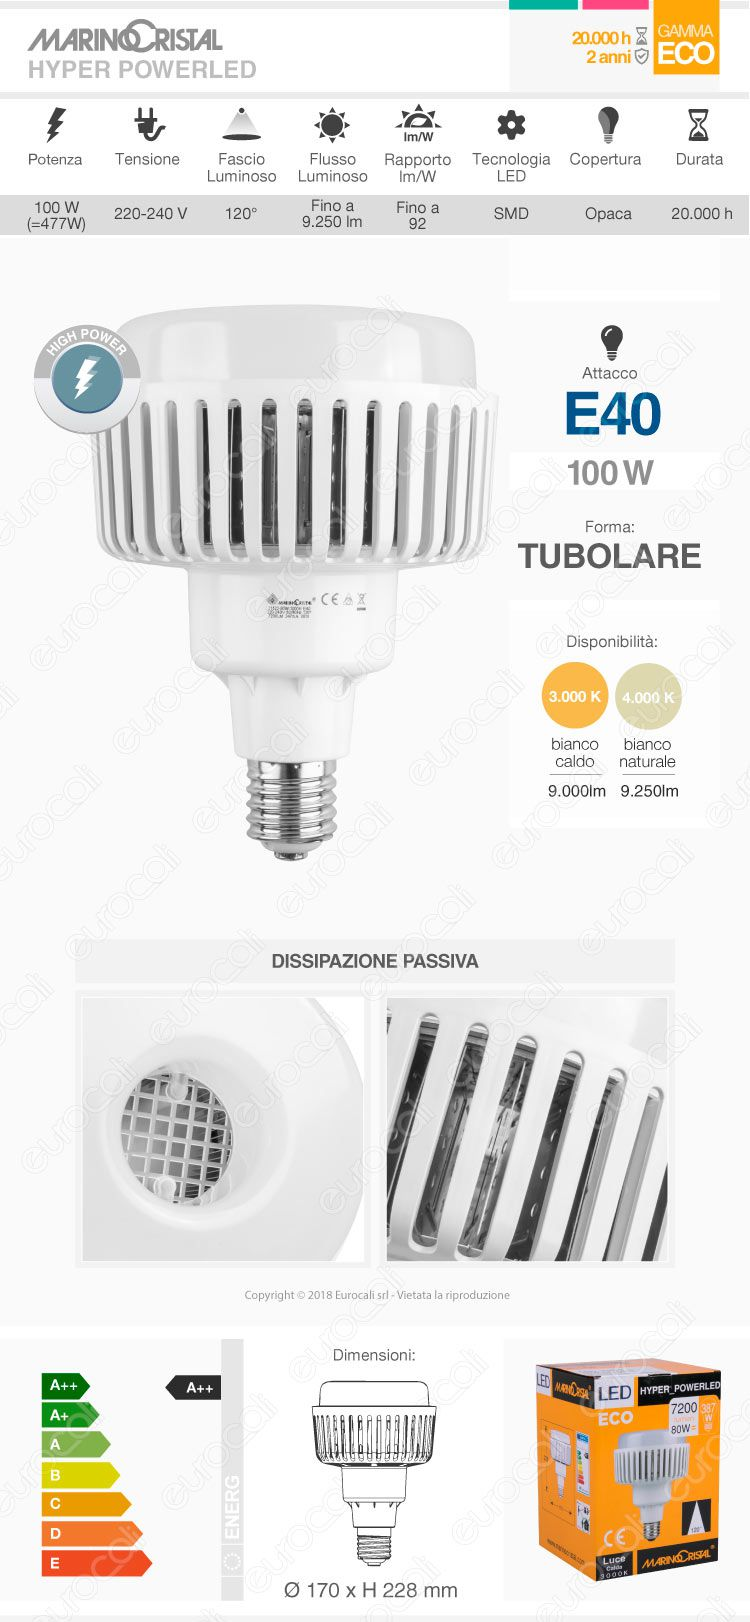 Marino Cristal Serie ECO mod. 21524 / 21525Lampadina LED High Power Bulb E40 100W